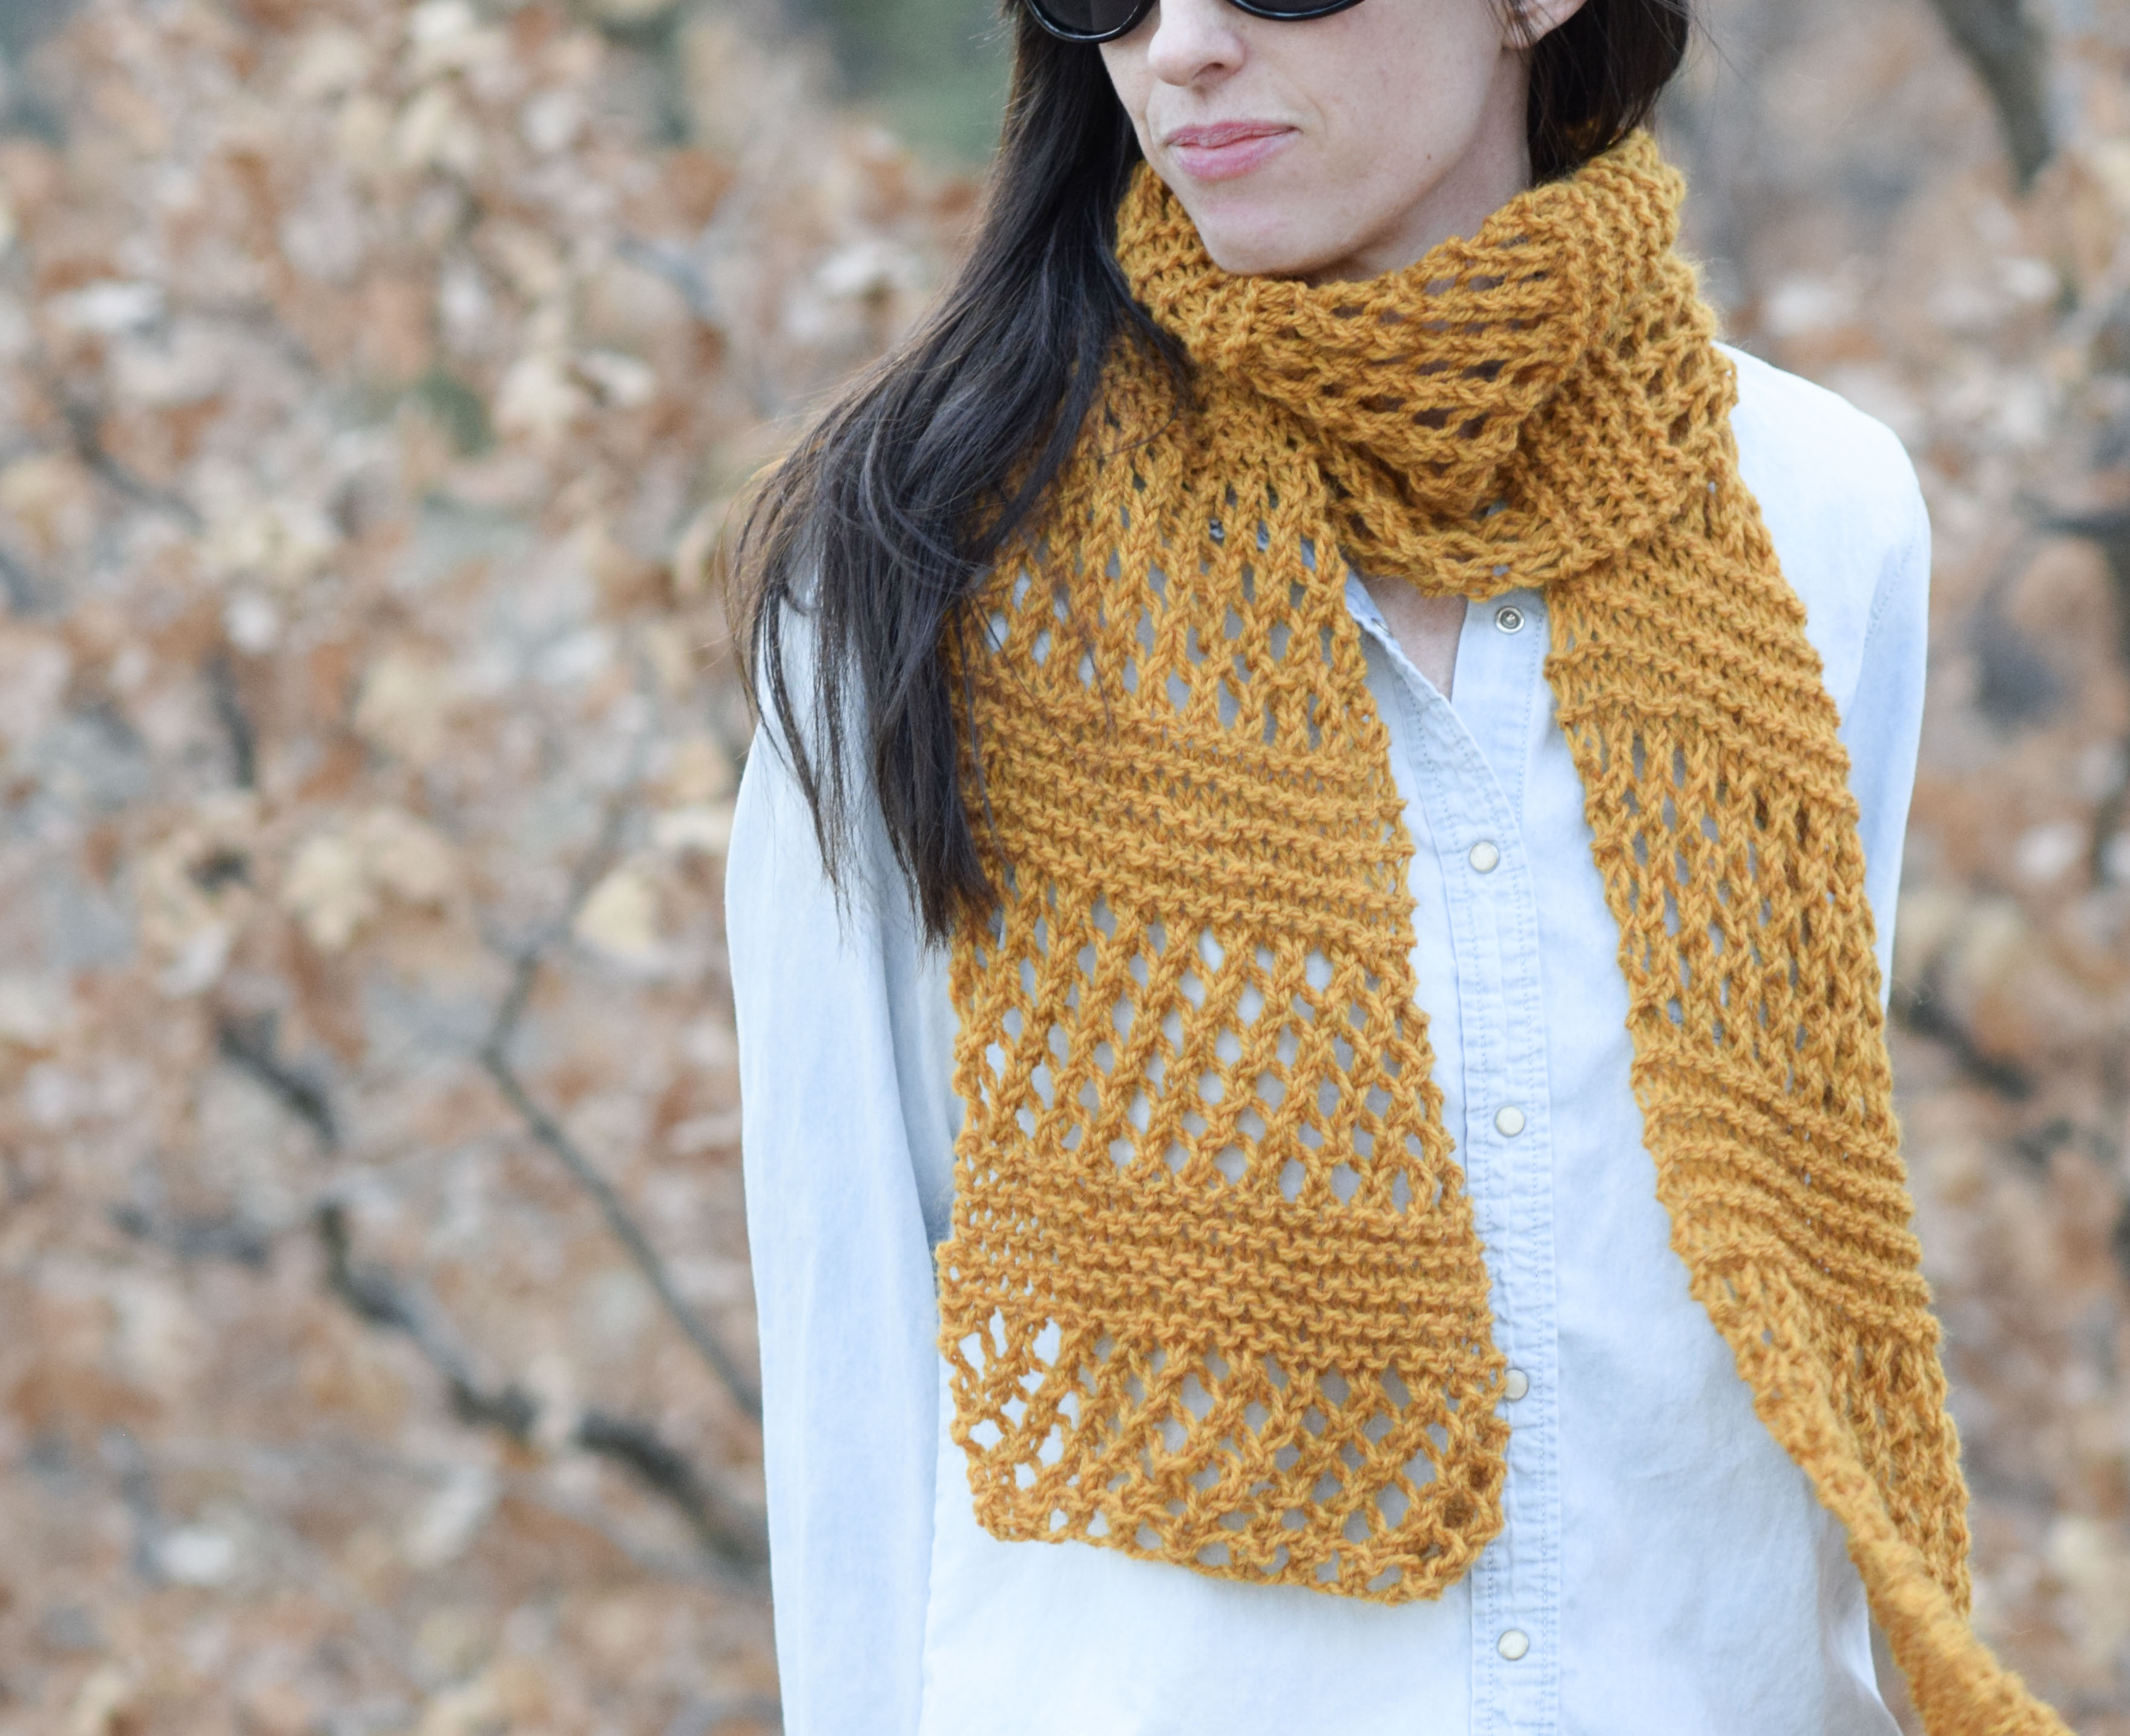 Knitting Scarf Pattern For Beginners Free Honeycombs Summer Easy Scarf Knitting Pattern Mama In A Stitch